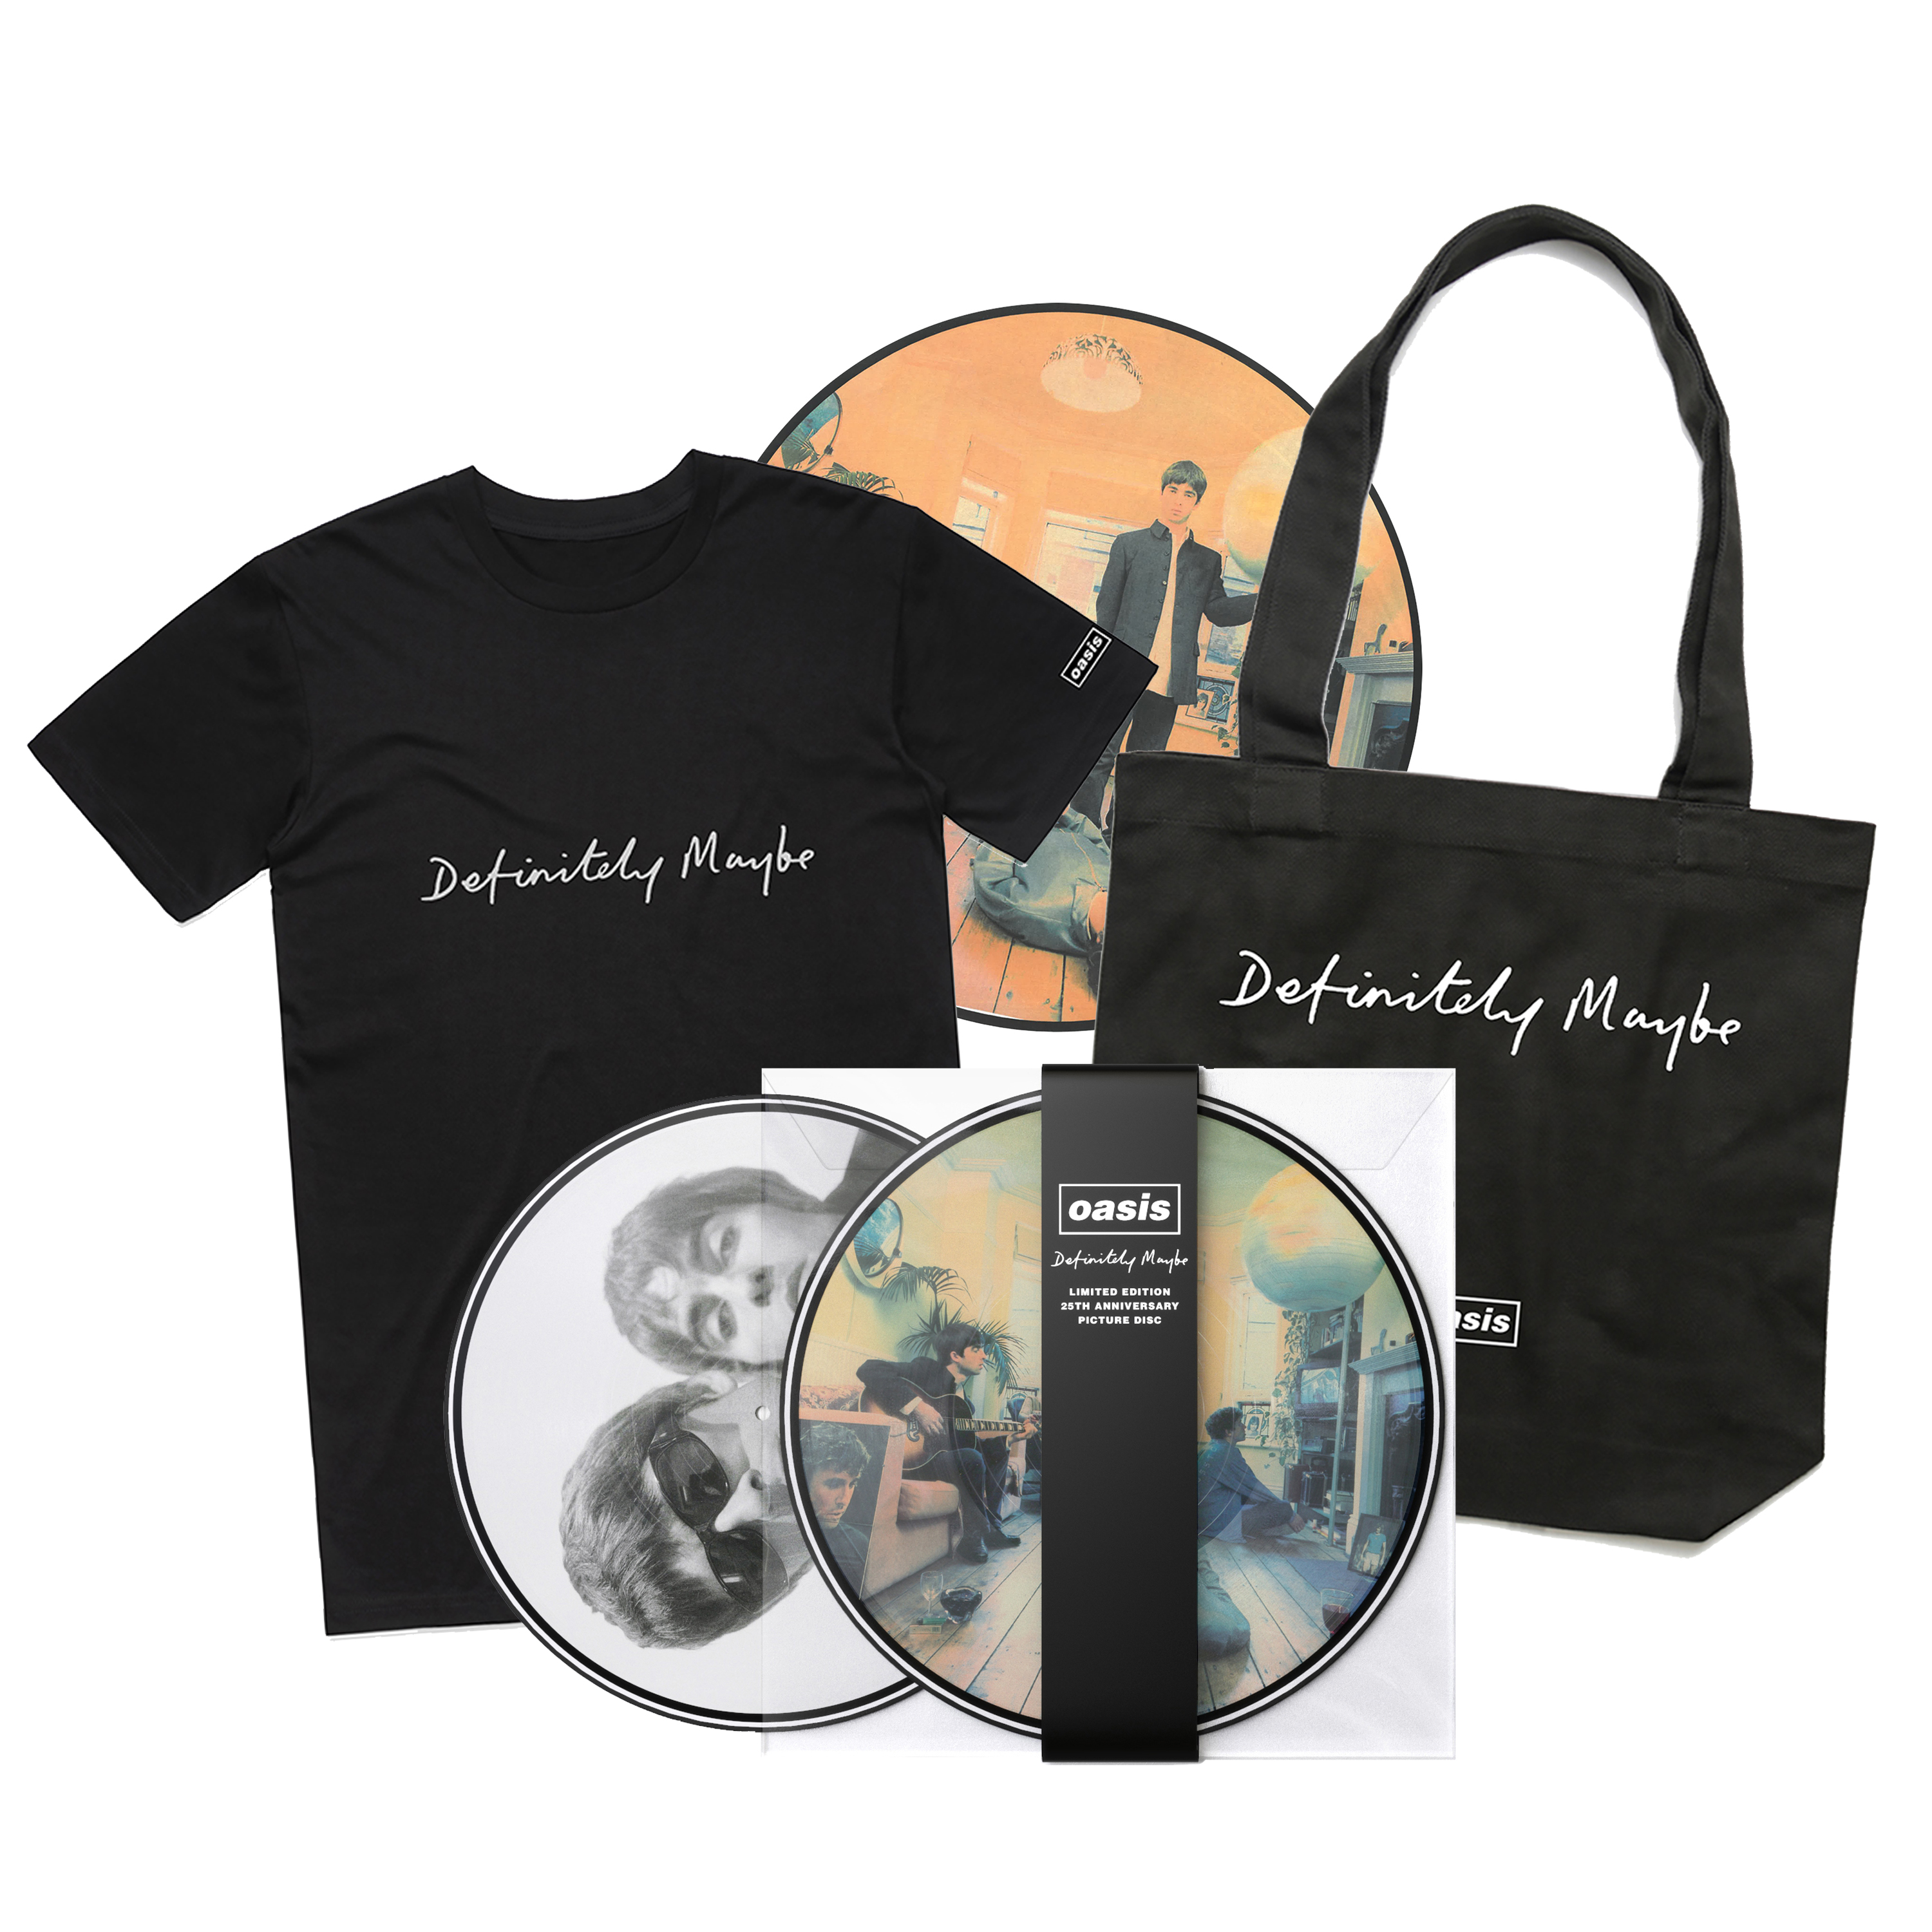 Buy Online Oasis - Definitely Maybe Picture Disc + T-Shirt + Tote Bag + Slipmat